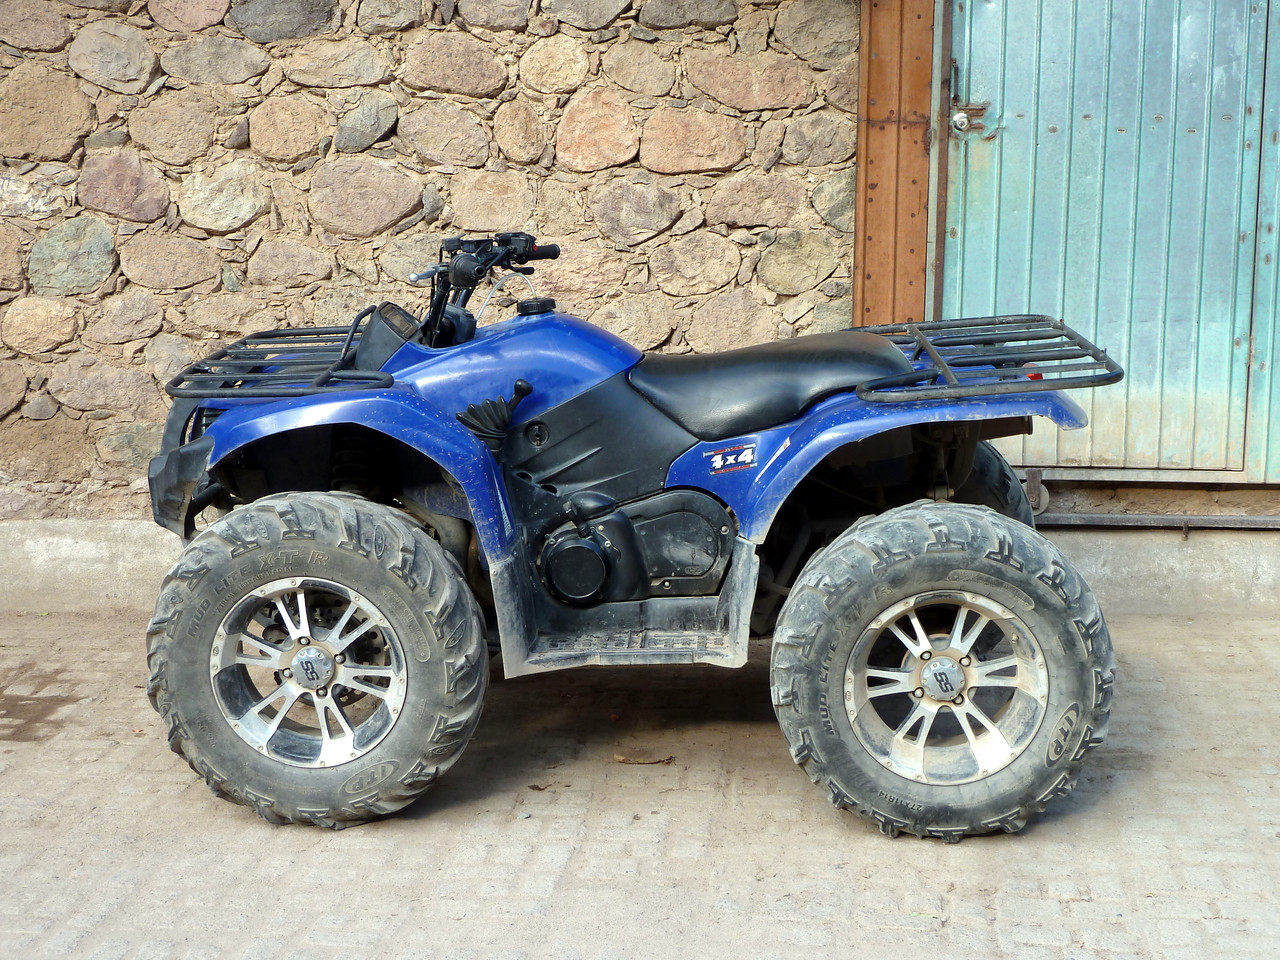 Blinged rims on a quad.